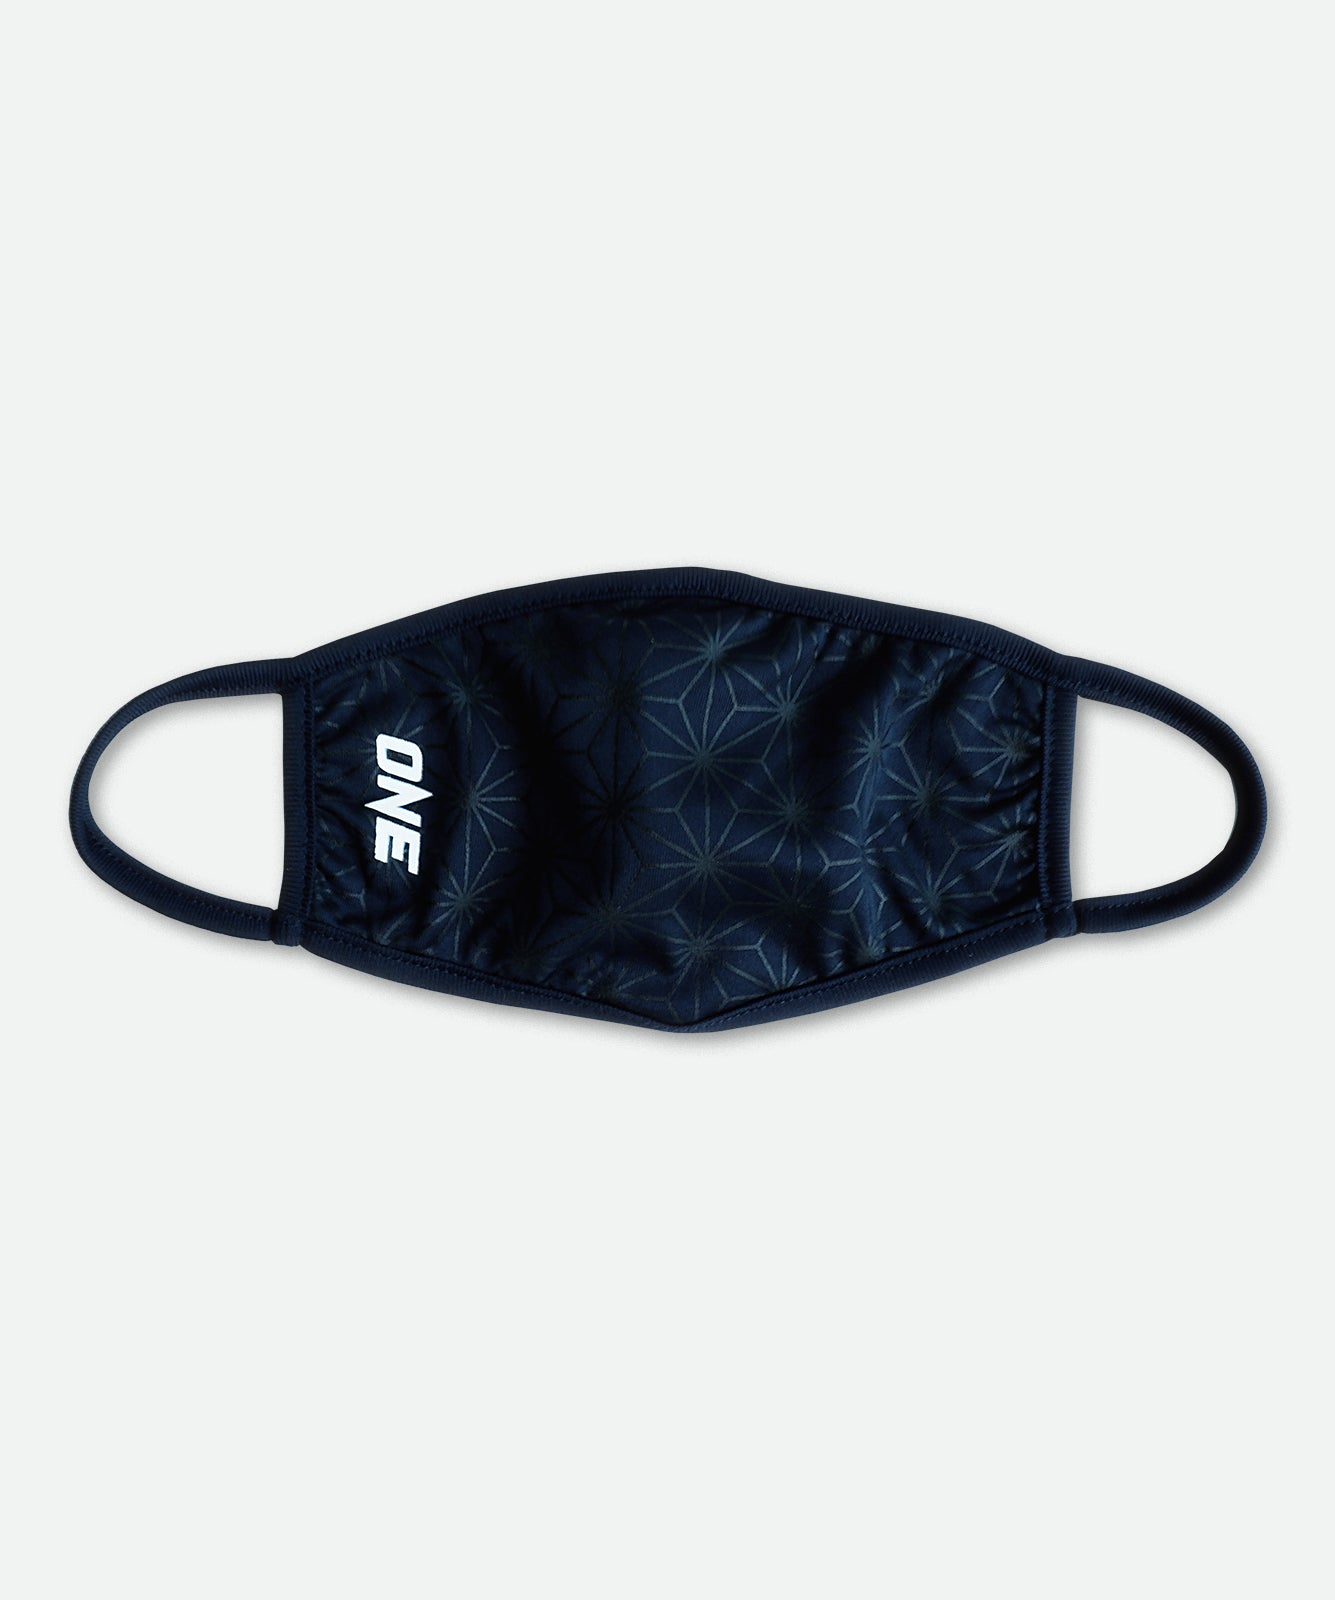 ONE Face Mask (Navy Geometric) - ONE.SHOP Philippines | The Official Online Shop of ONE Championship